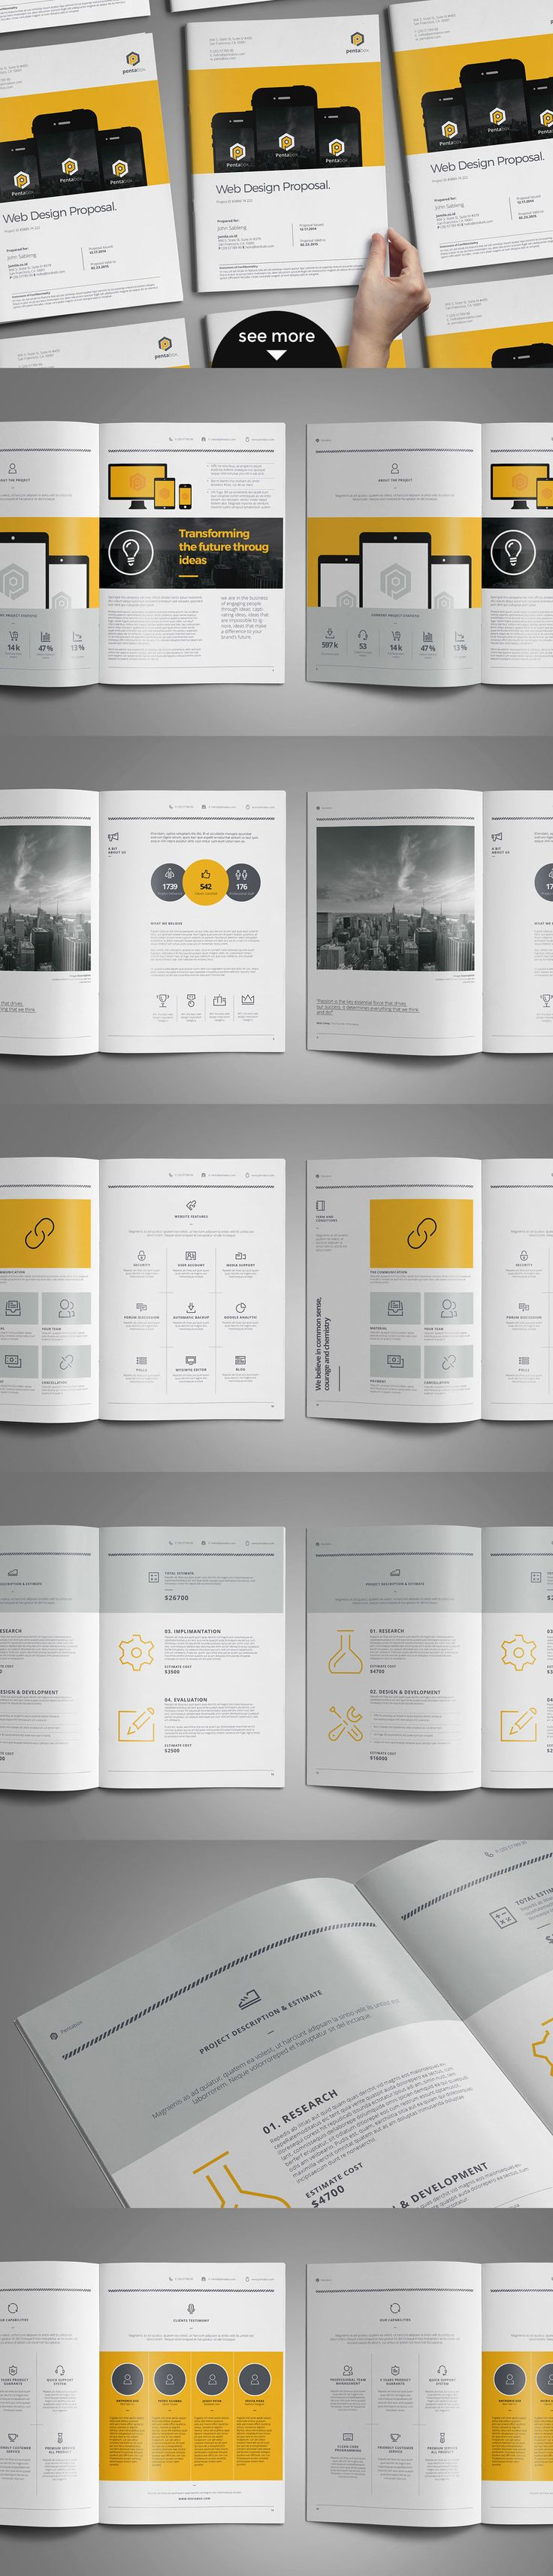 free proposal template%0A Free this week  Web Design Proposal by broluthfi on Creative Market